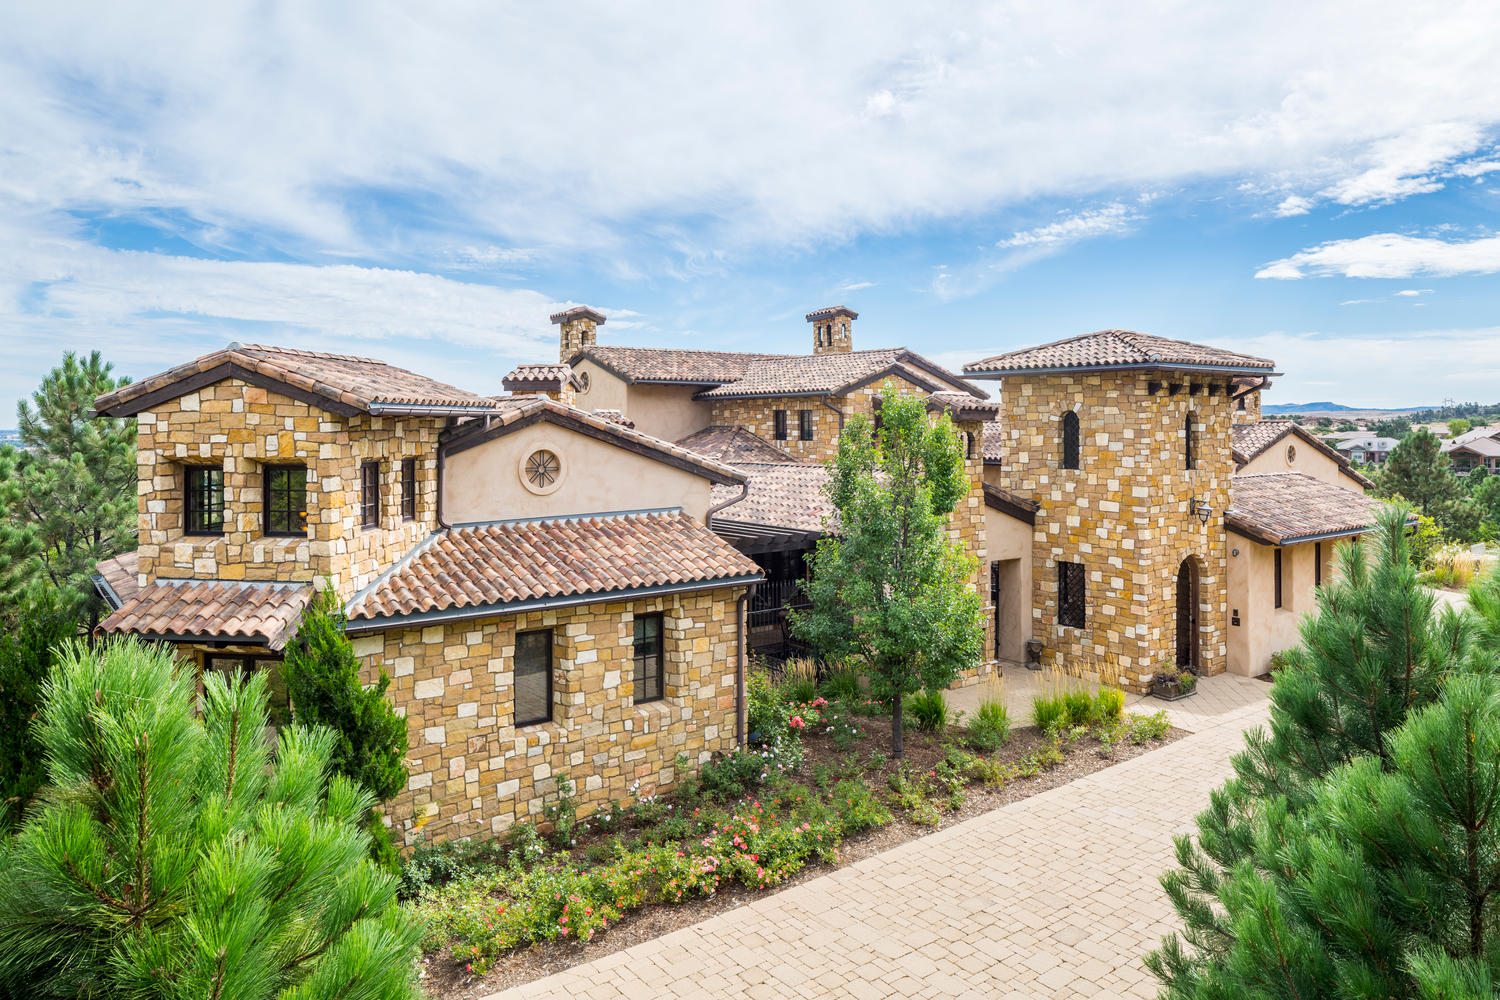 Single Family Home for Active at Rare estate property within the gates of Ravenna 7625 Dante Dr Littleton, Colorado 80125 United States